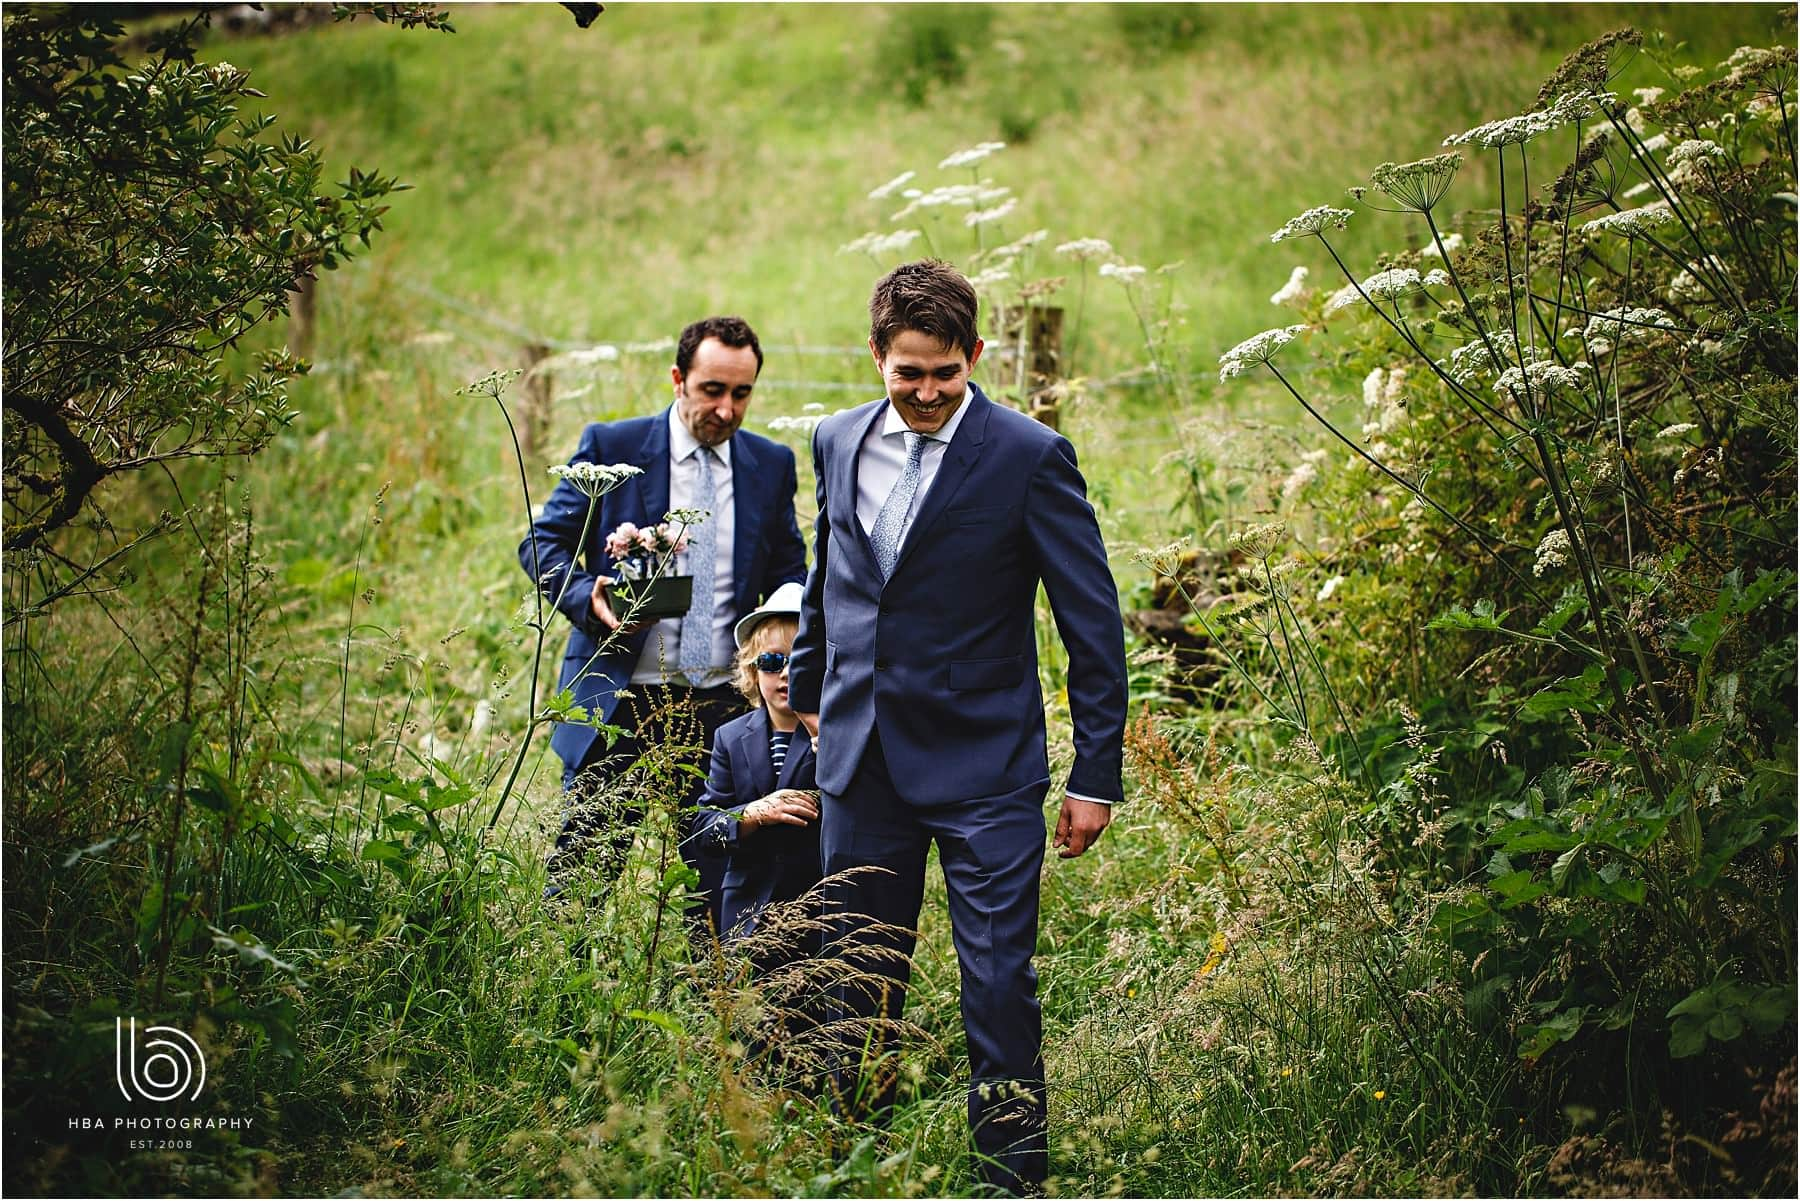 the groom & best mand coming down the hill to the venue